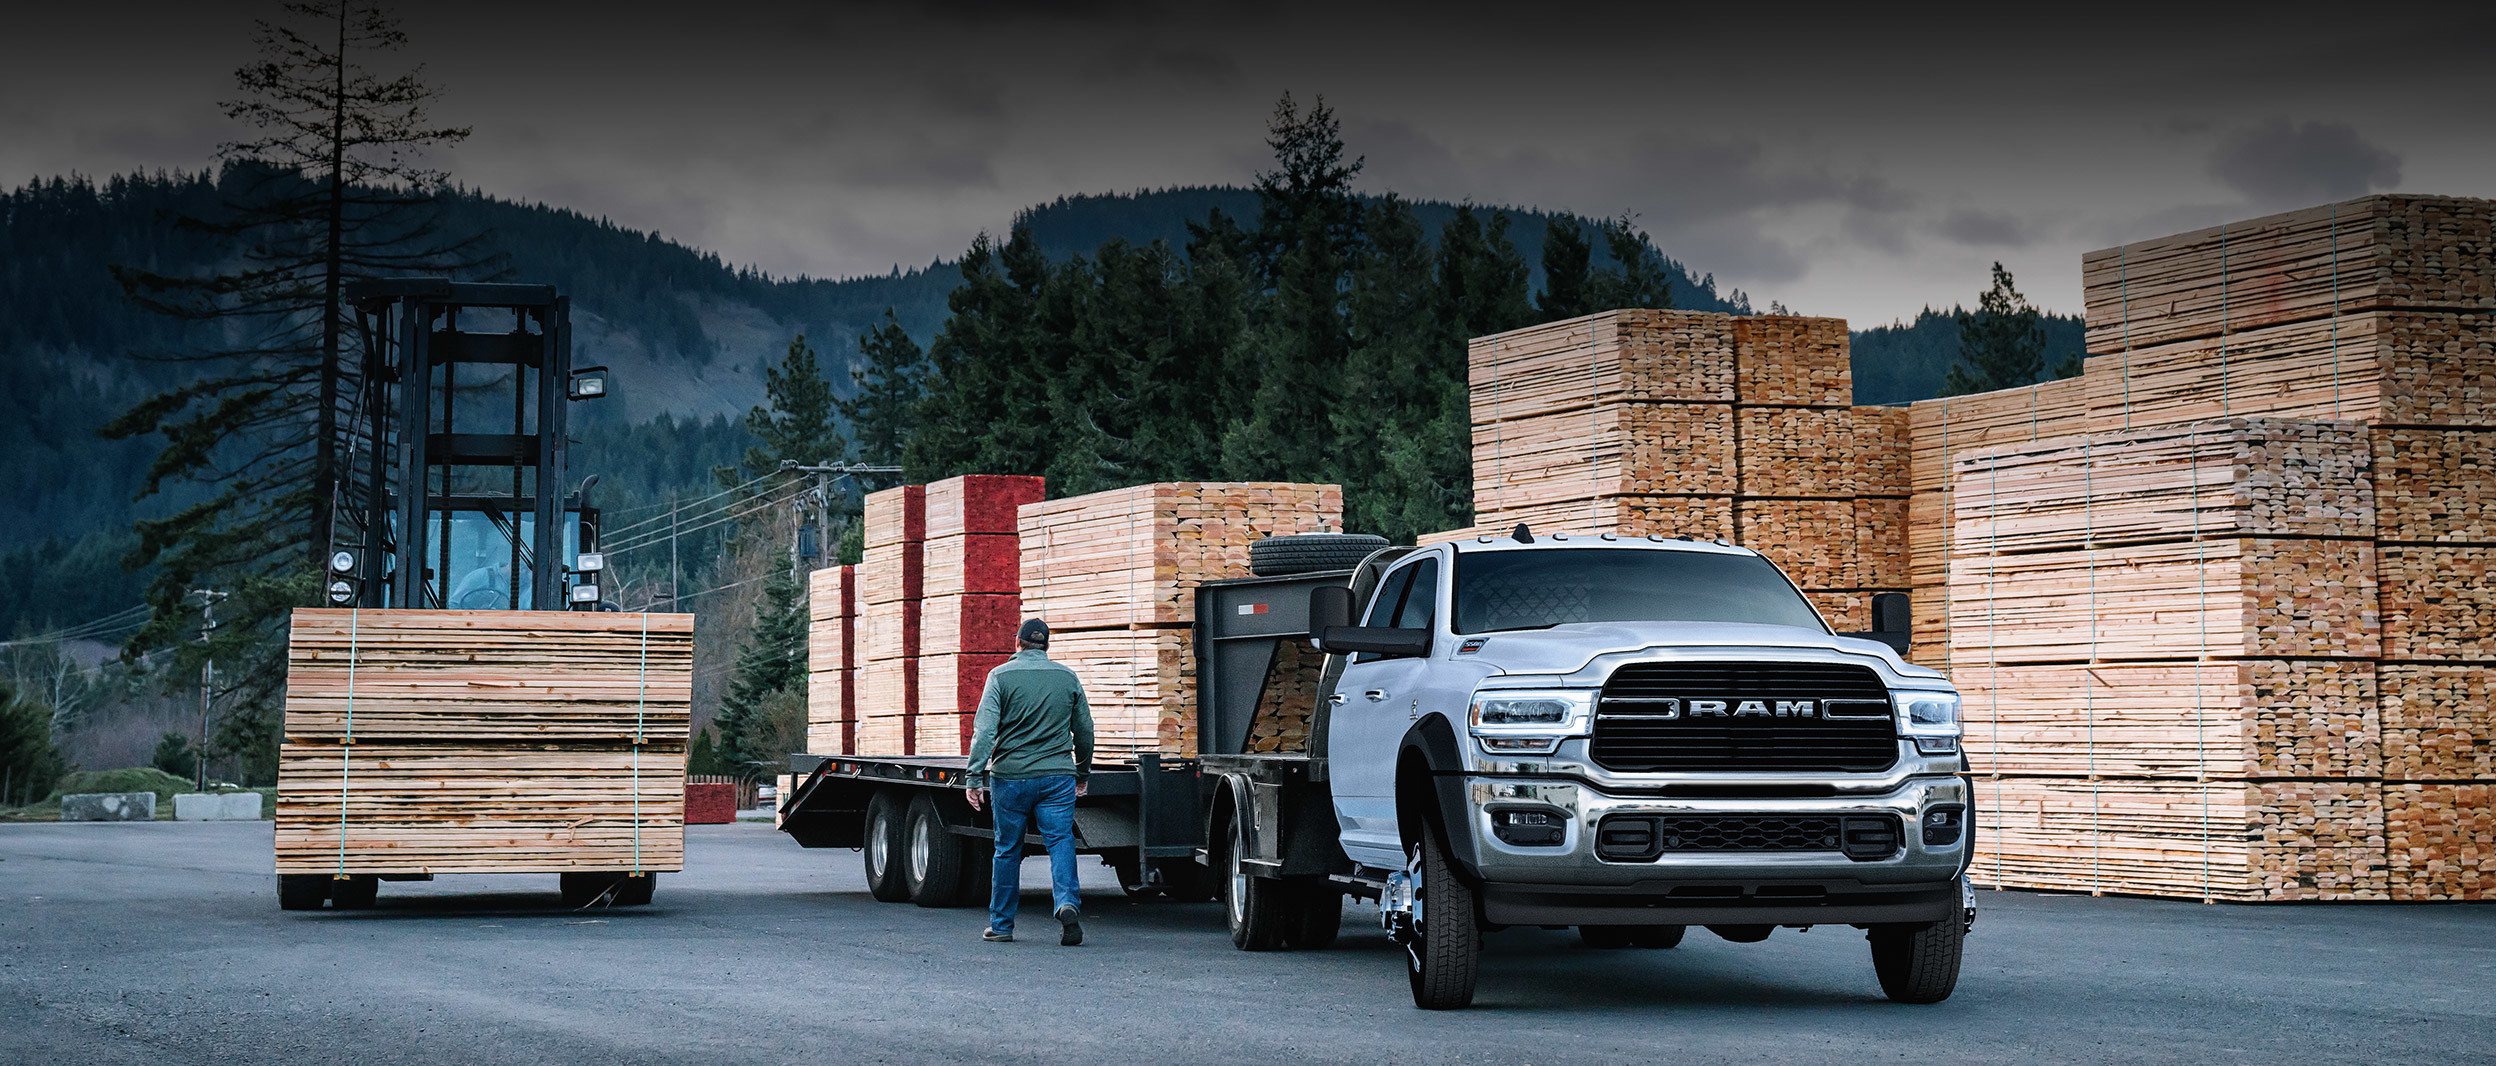 The white 2020 Ram Chassis Cab is parked in a loading zone while towing lumbers